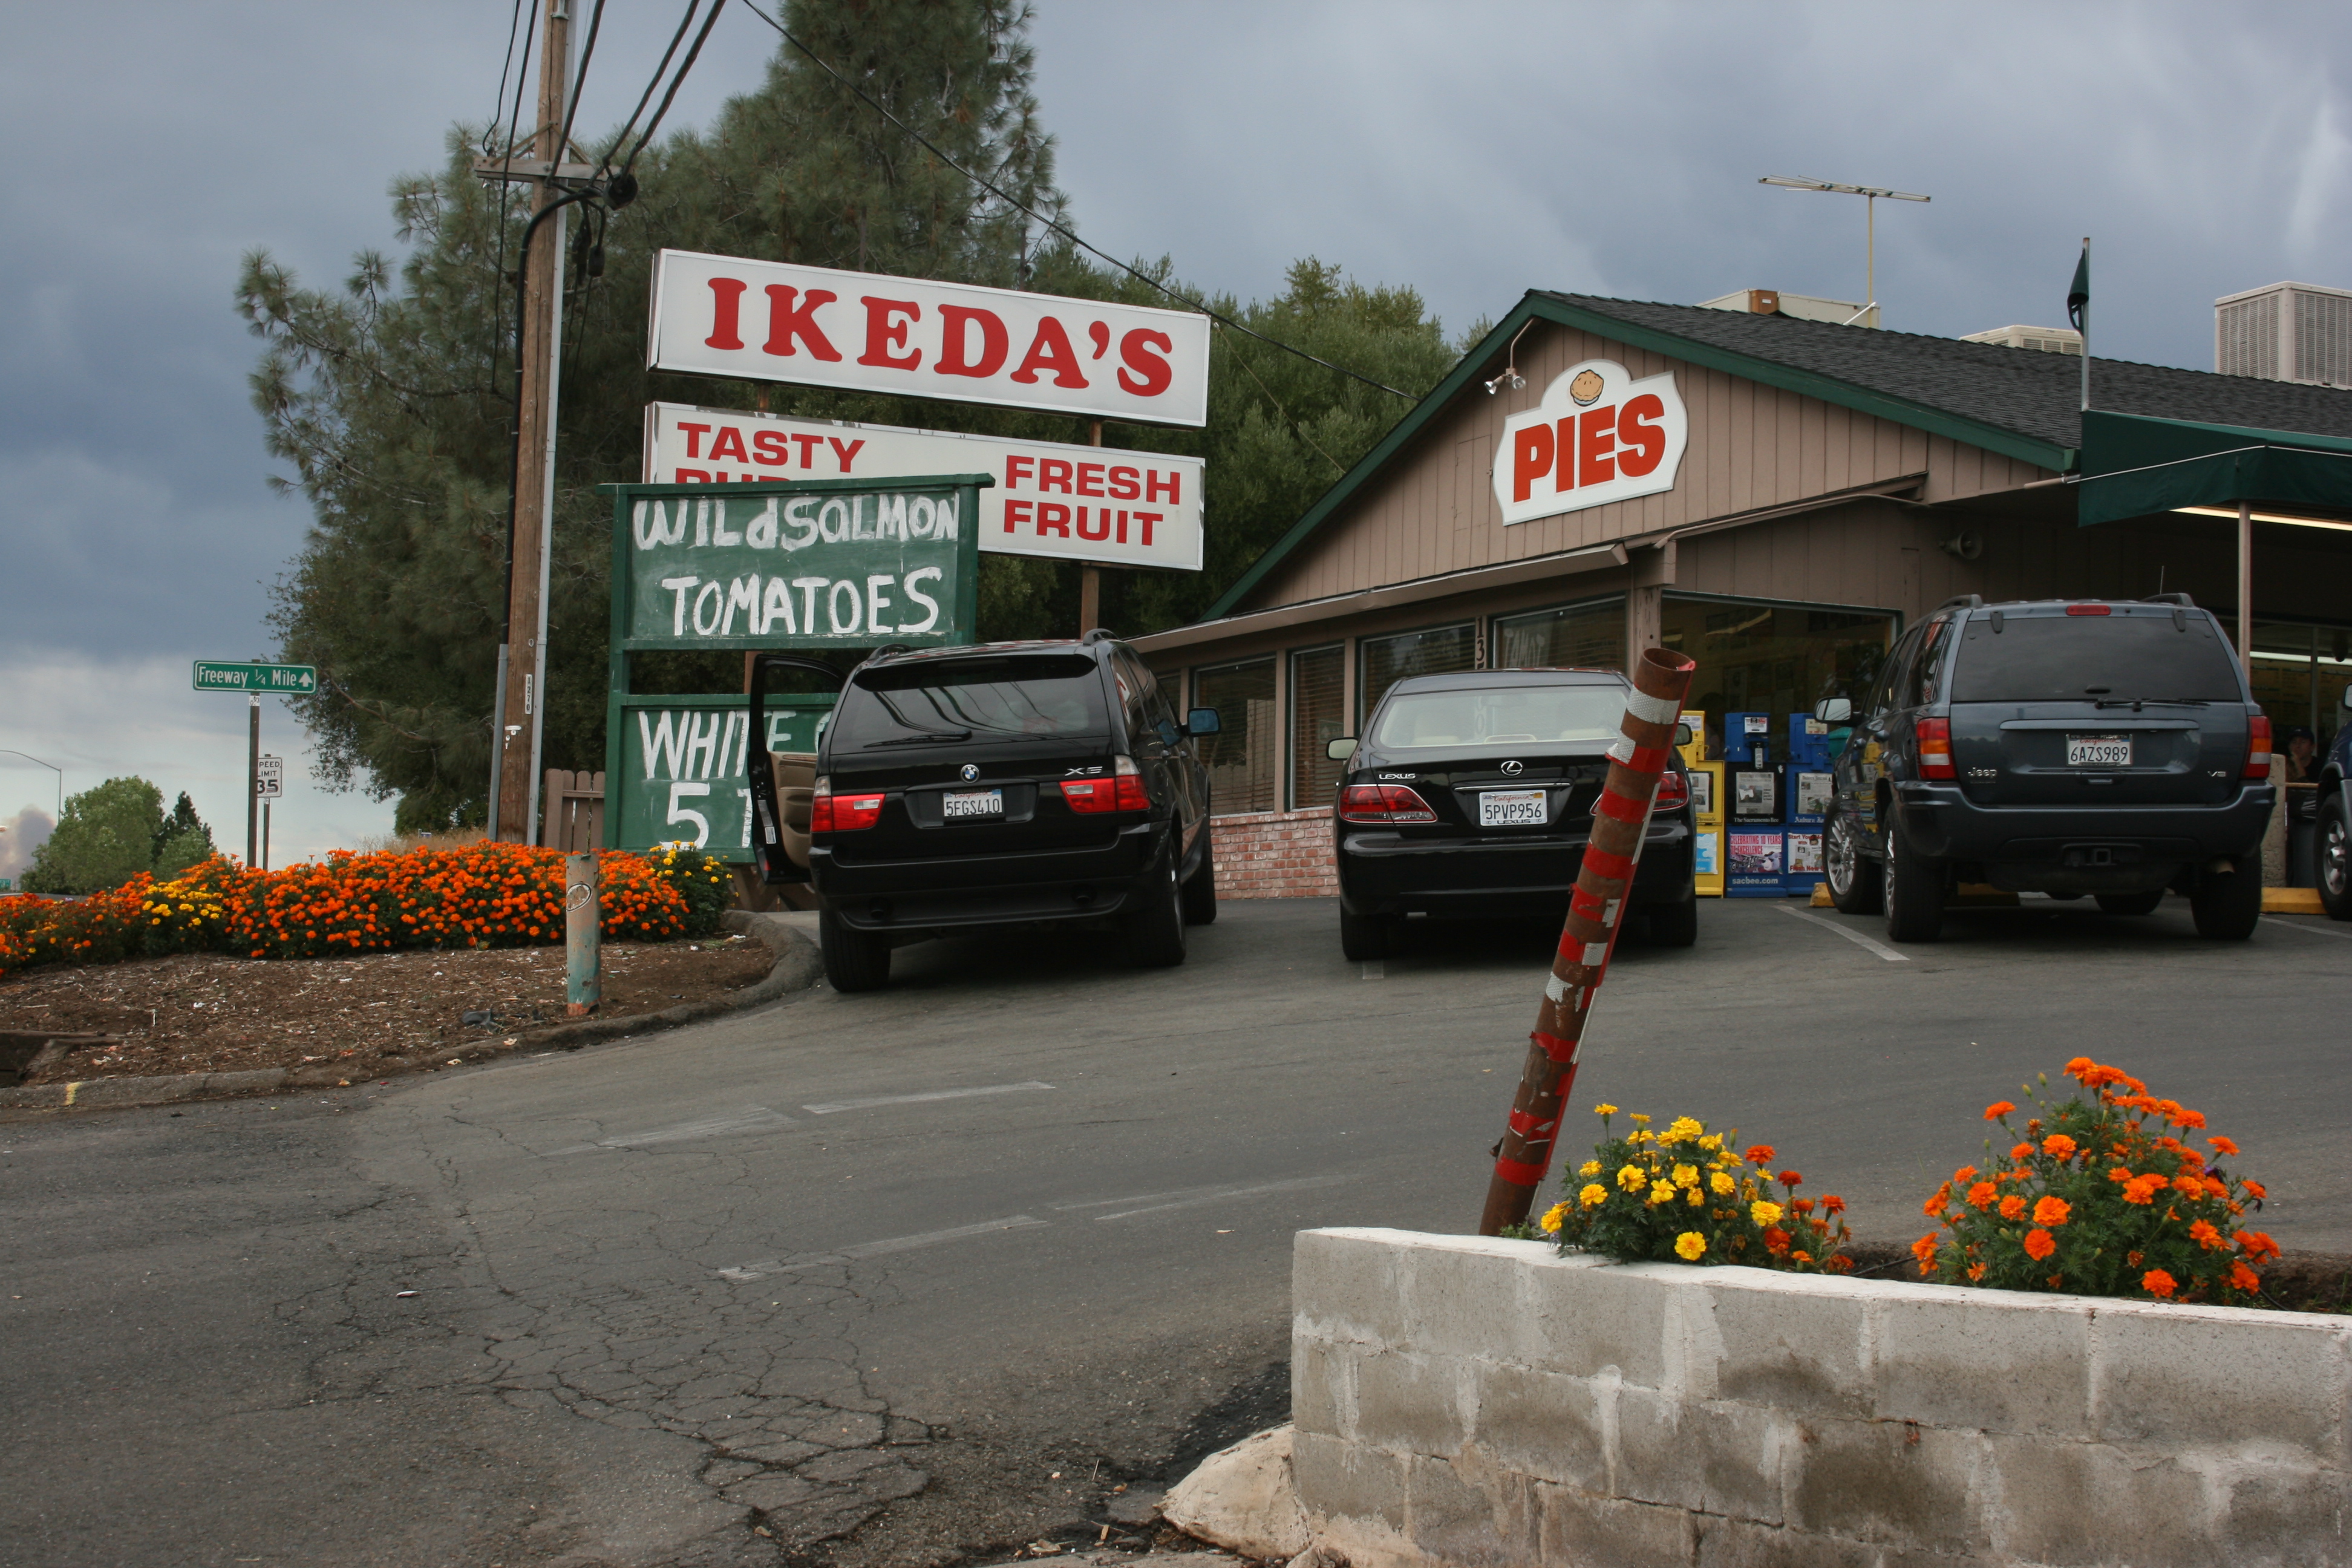 Ikeda's, now and forever.